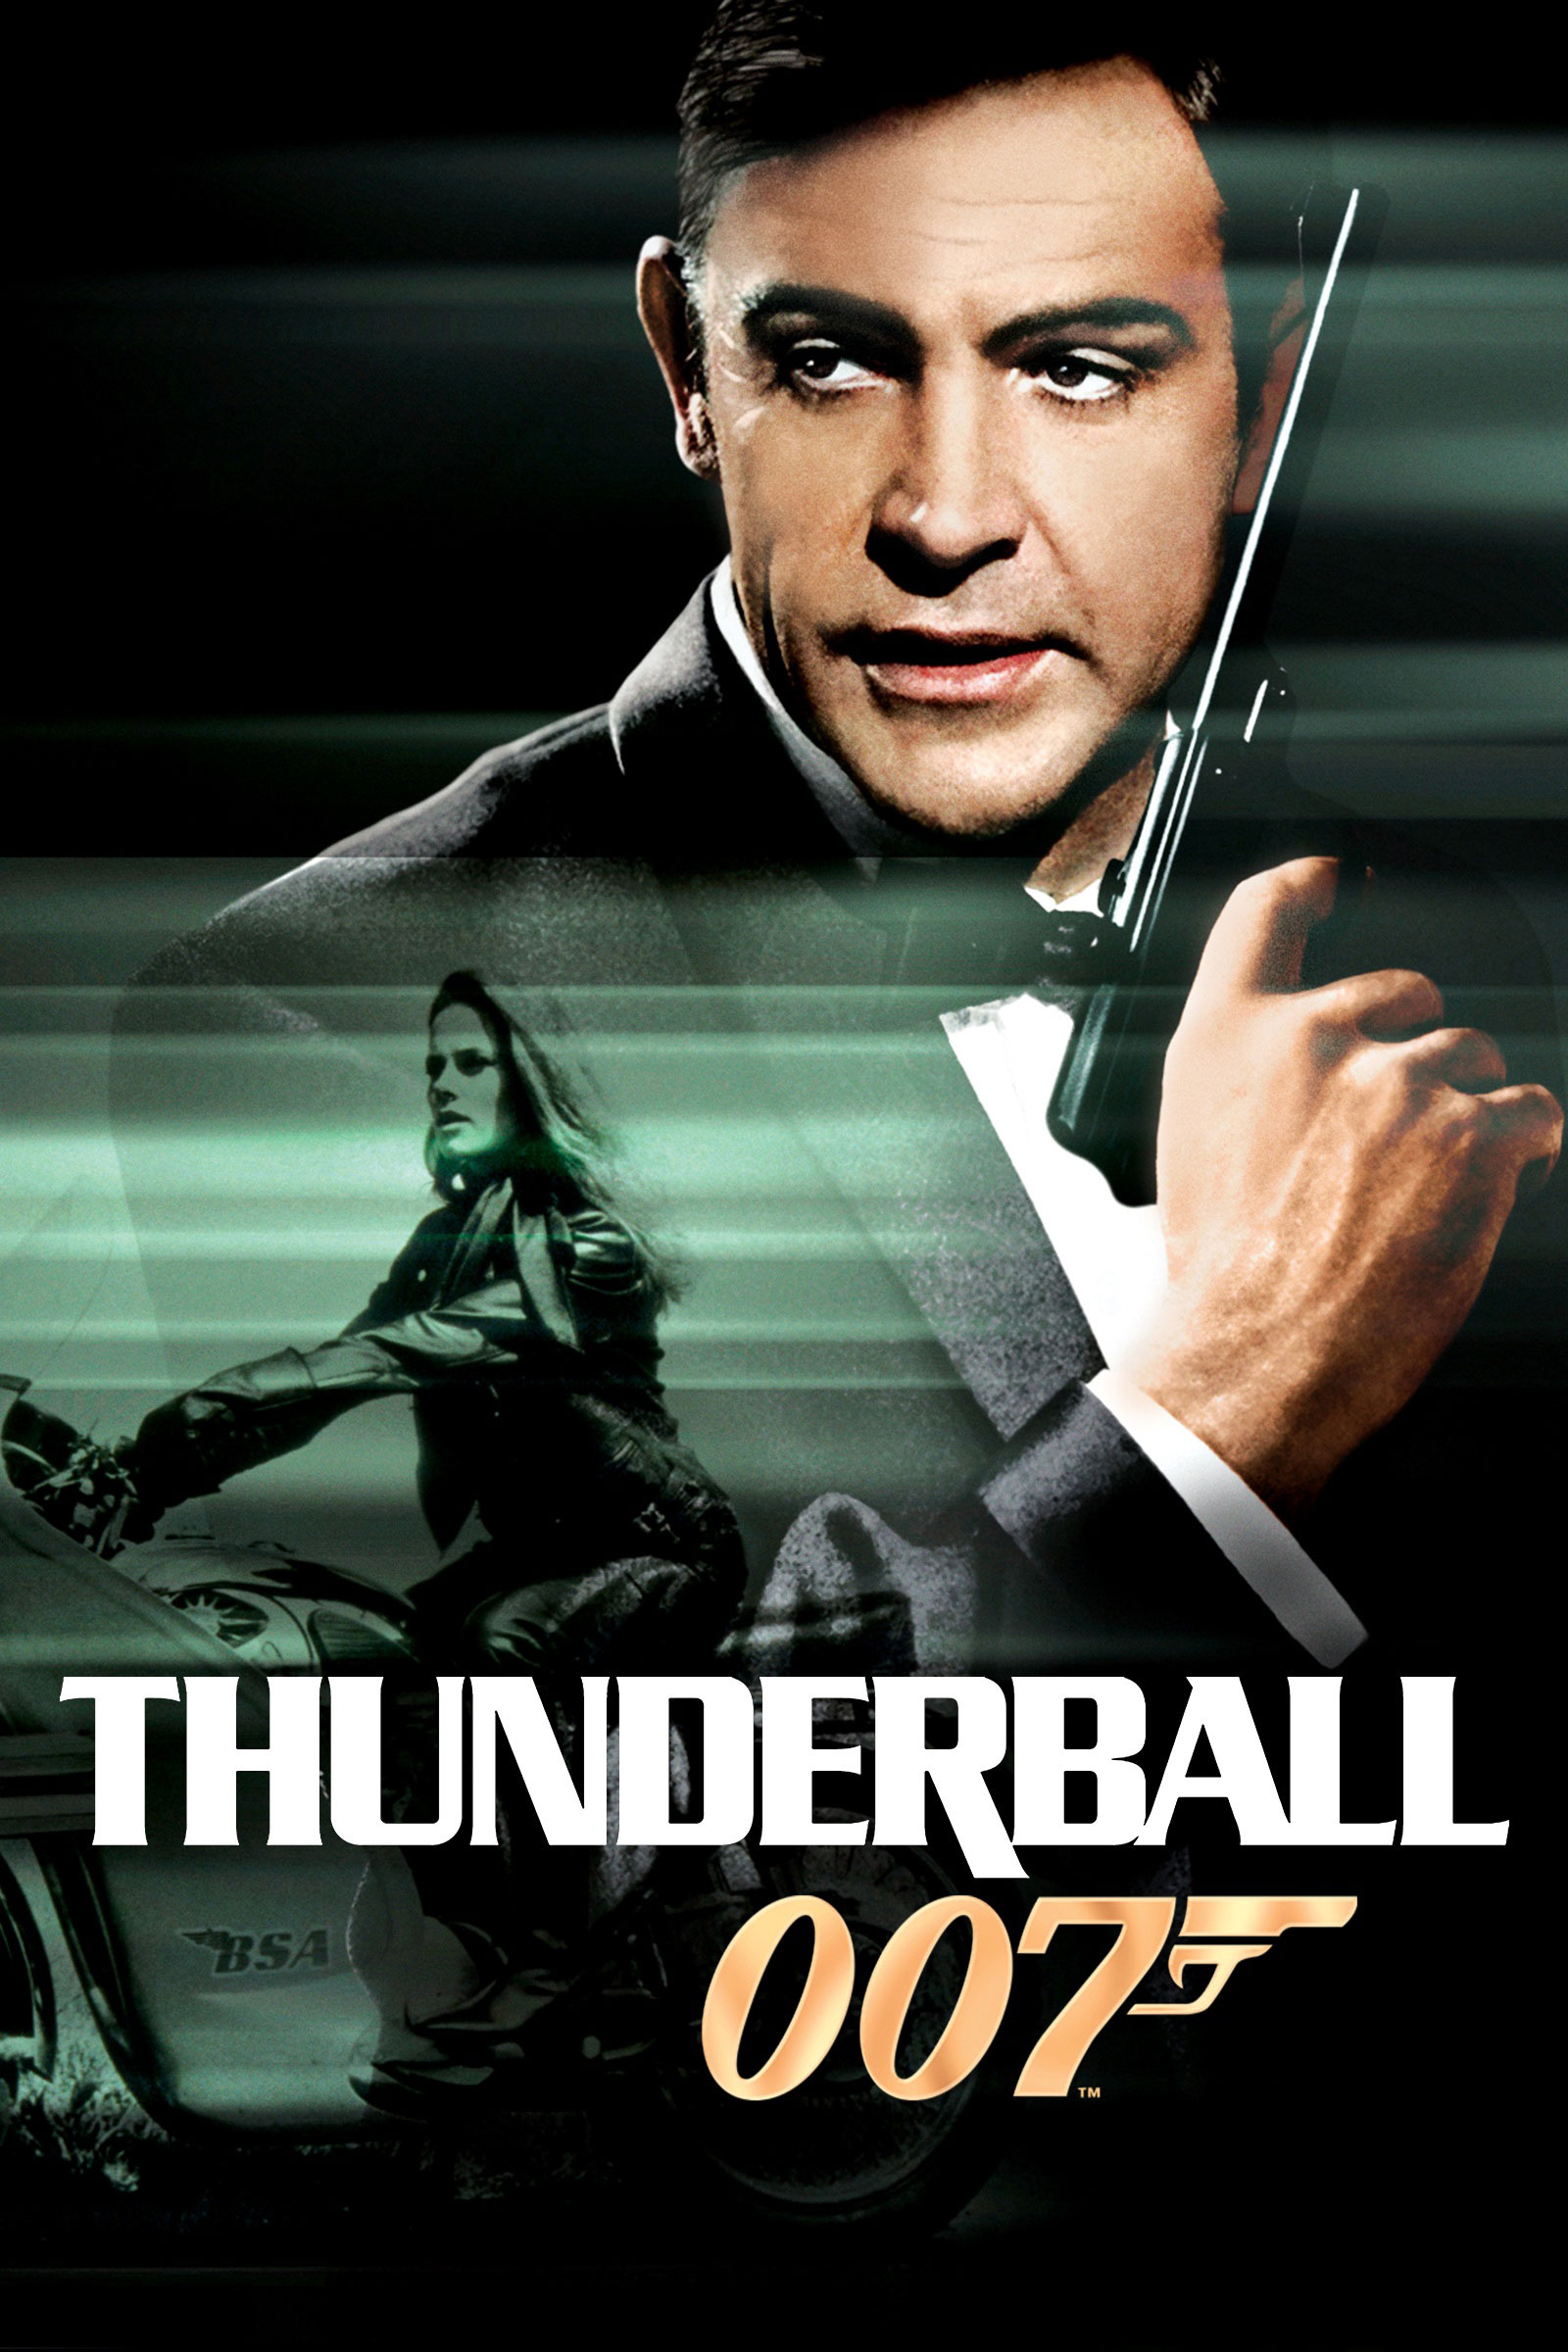 thunderball theme song movie theme songs amp tv soundtracks